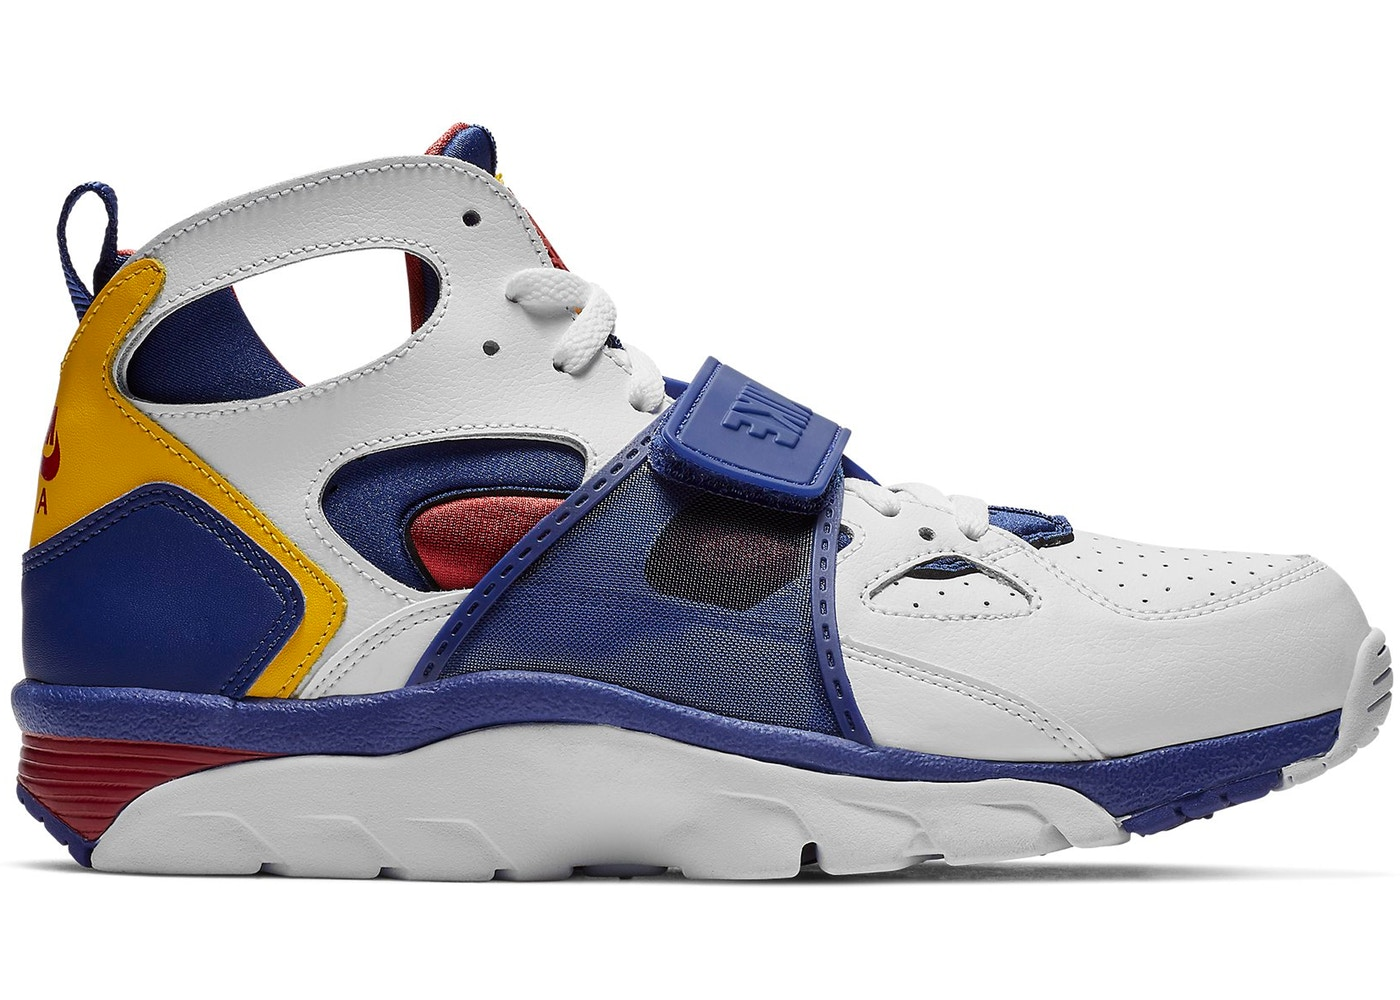 super popular 11a60 a81d1 Air Trainer Huarache White Regency Purple Amarillo - 679083-